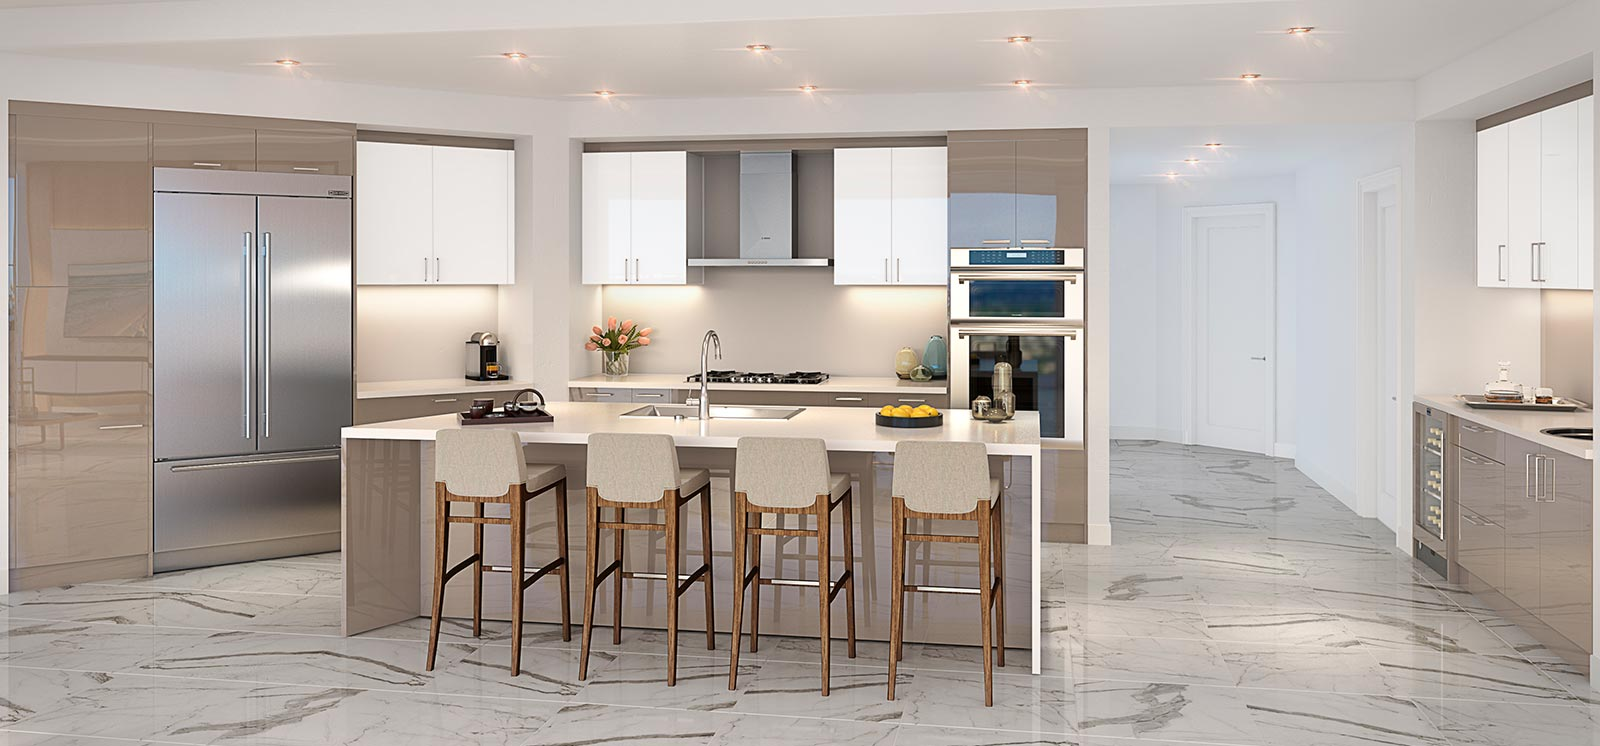 100 Las Olas Kitchen Rendering Luxe